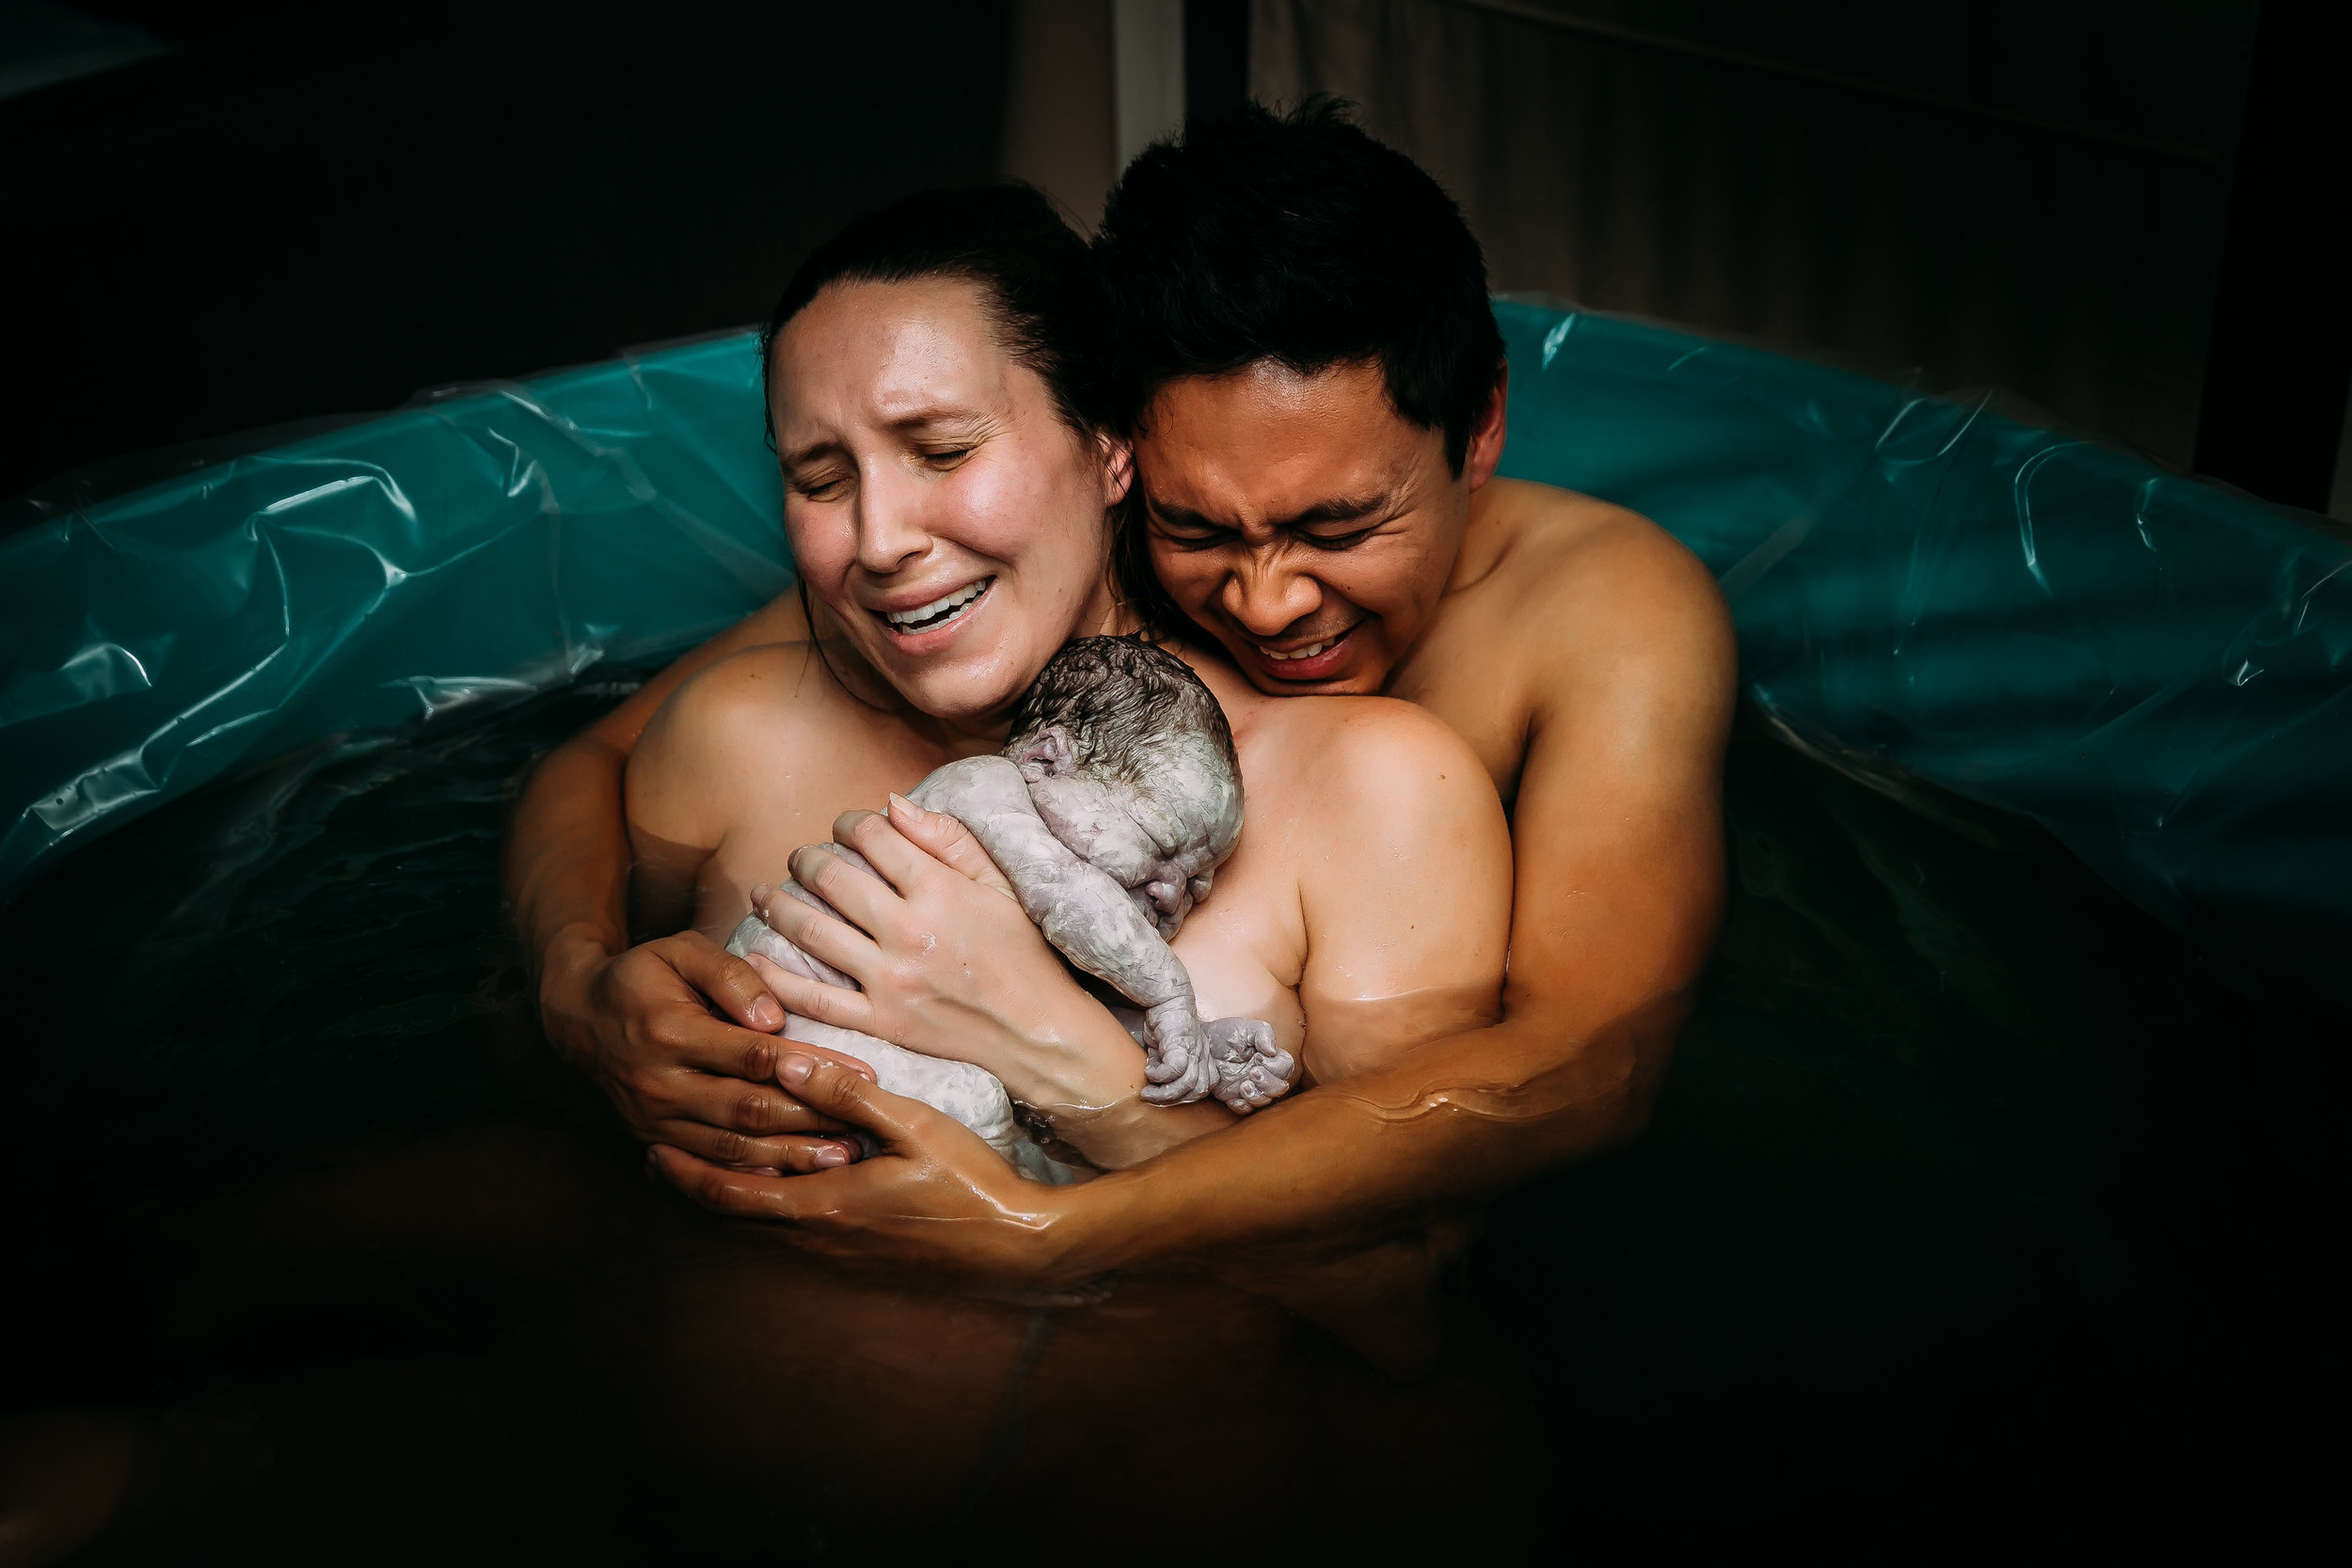 Birth&MotherhoodPhotographer + FiLmmaker +Doula  - Capturing the most transformative time of your life ina in an artful way